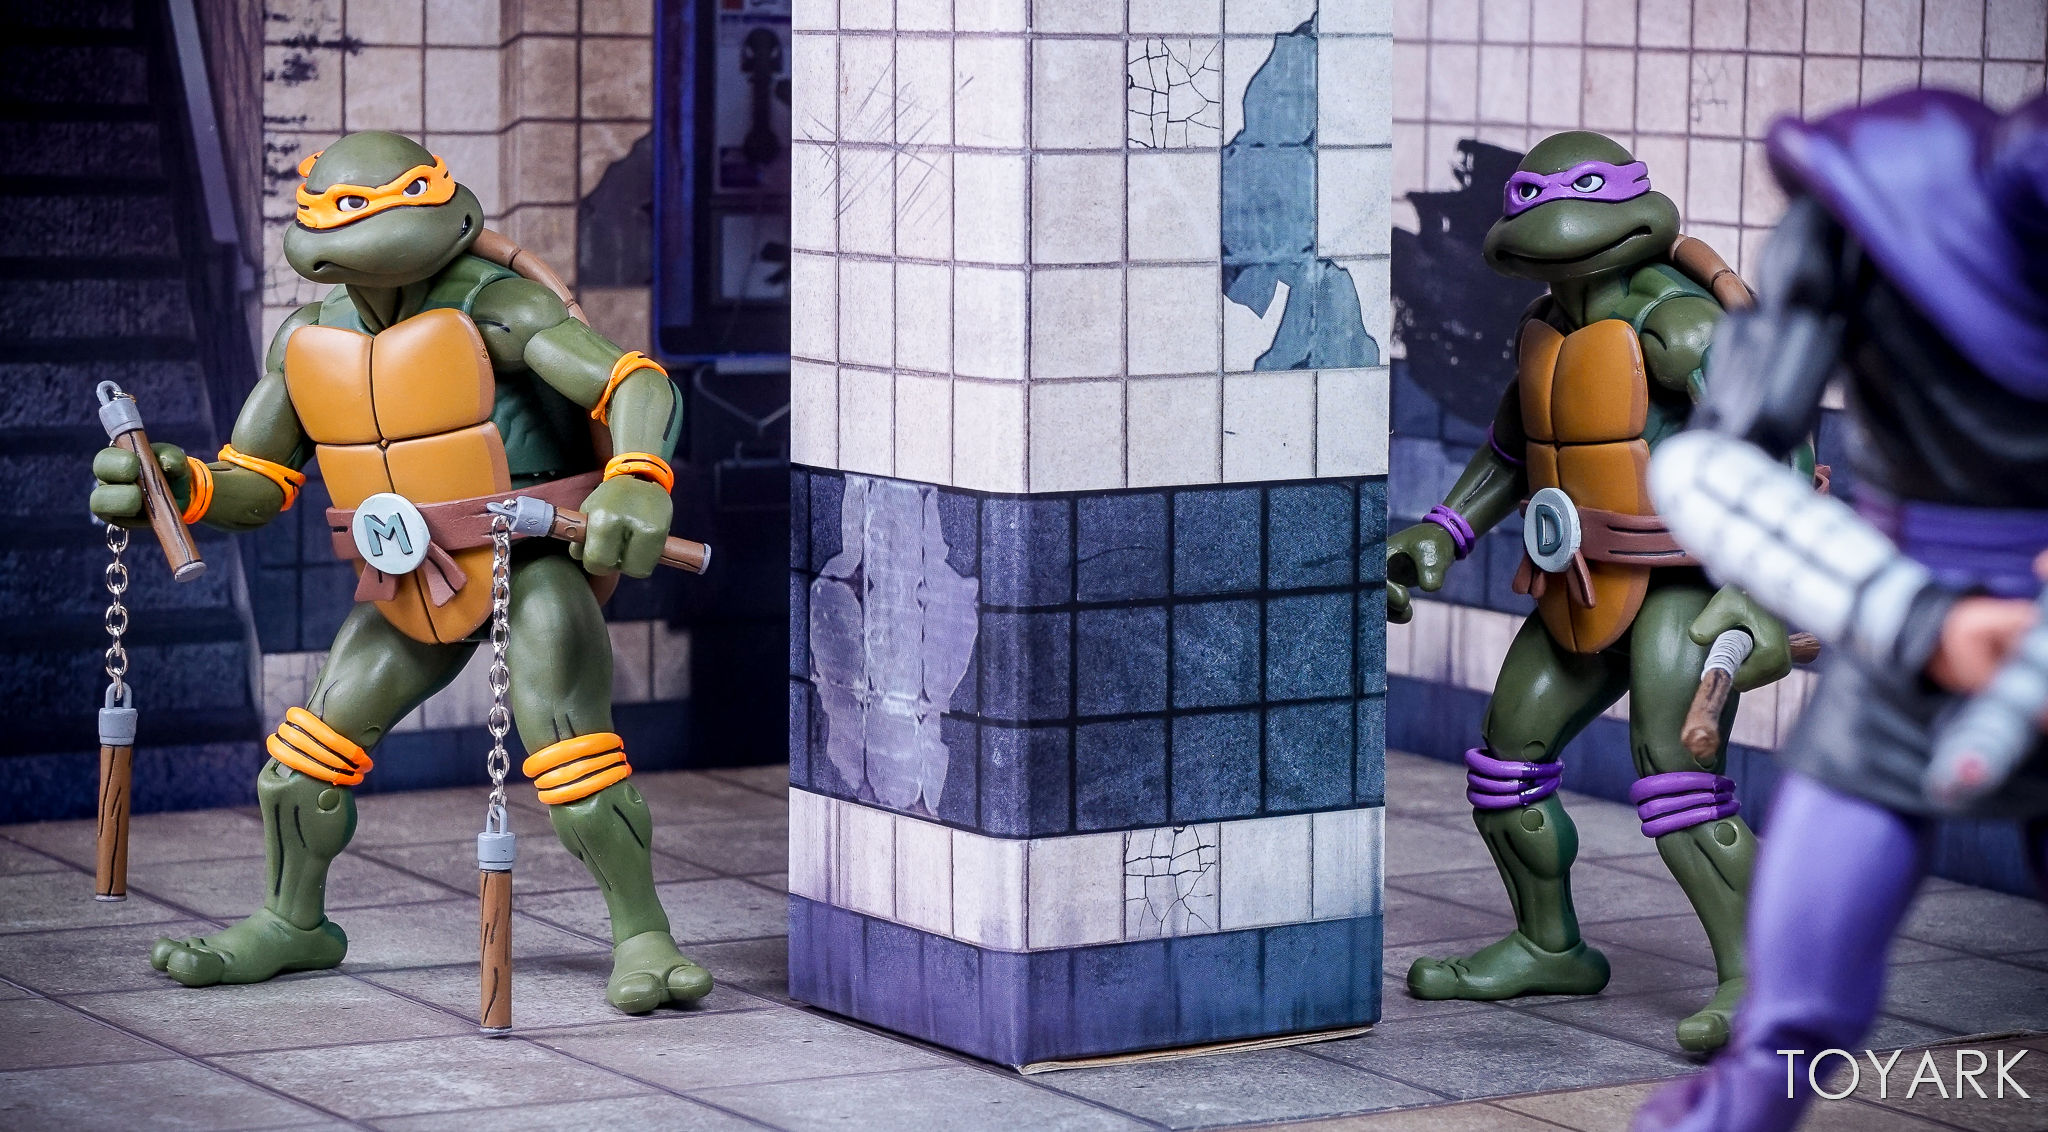 http://news.toyark.com/wp-content/uploads/sites/4/2017/07/NECA-SDCC-2017-Toon-TMNT-067.jpg